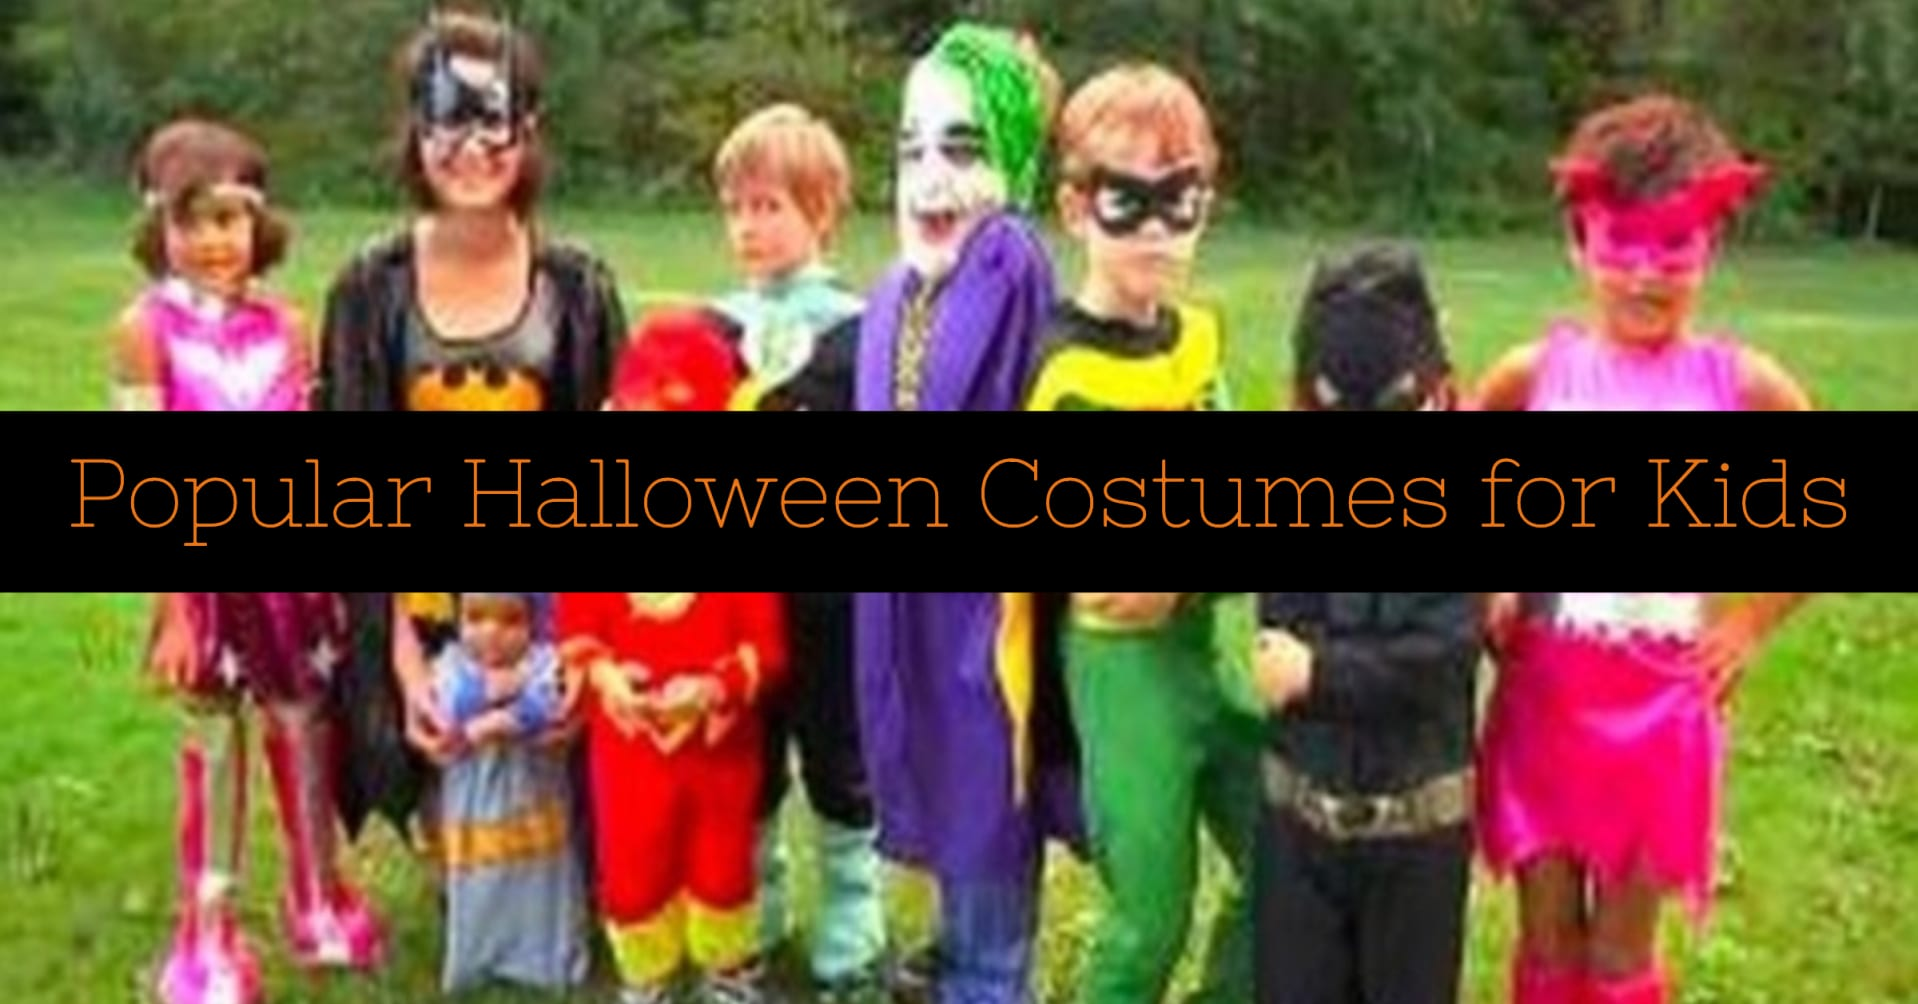 Most Popular Halloween Costumes for Kids This Year